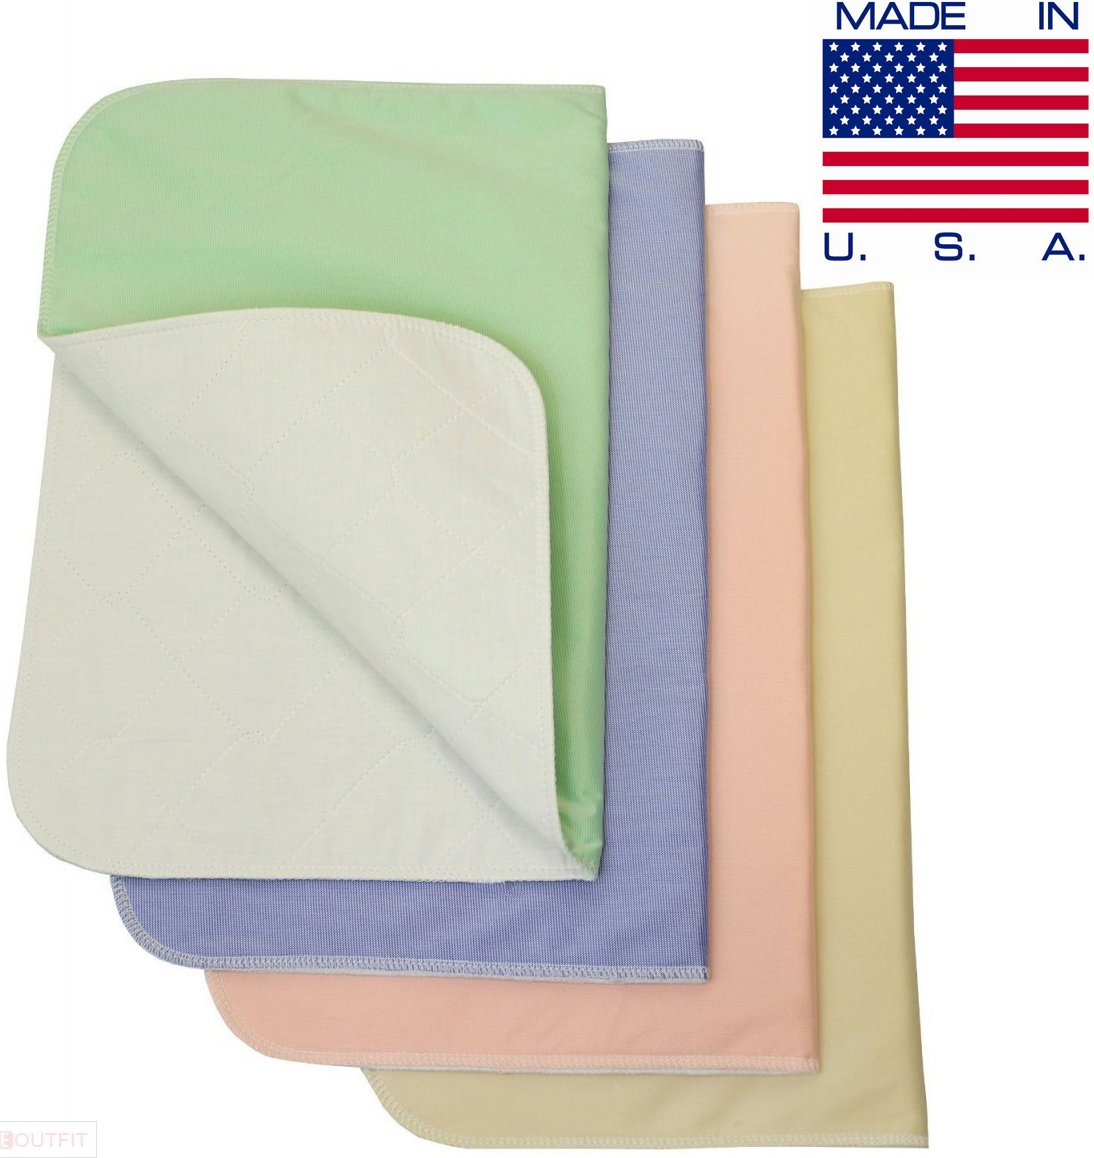 Washable Bed Pads Chair Pads/Incontinence Small Underpad - 18x24-4 Pack